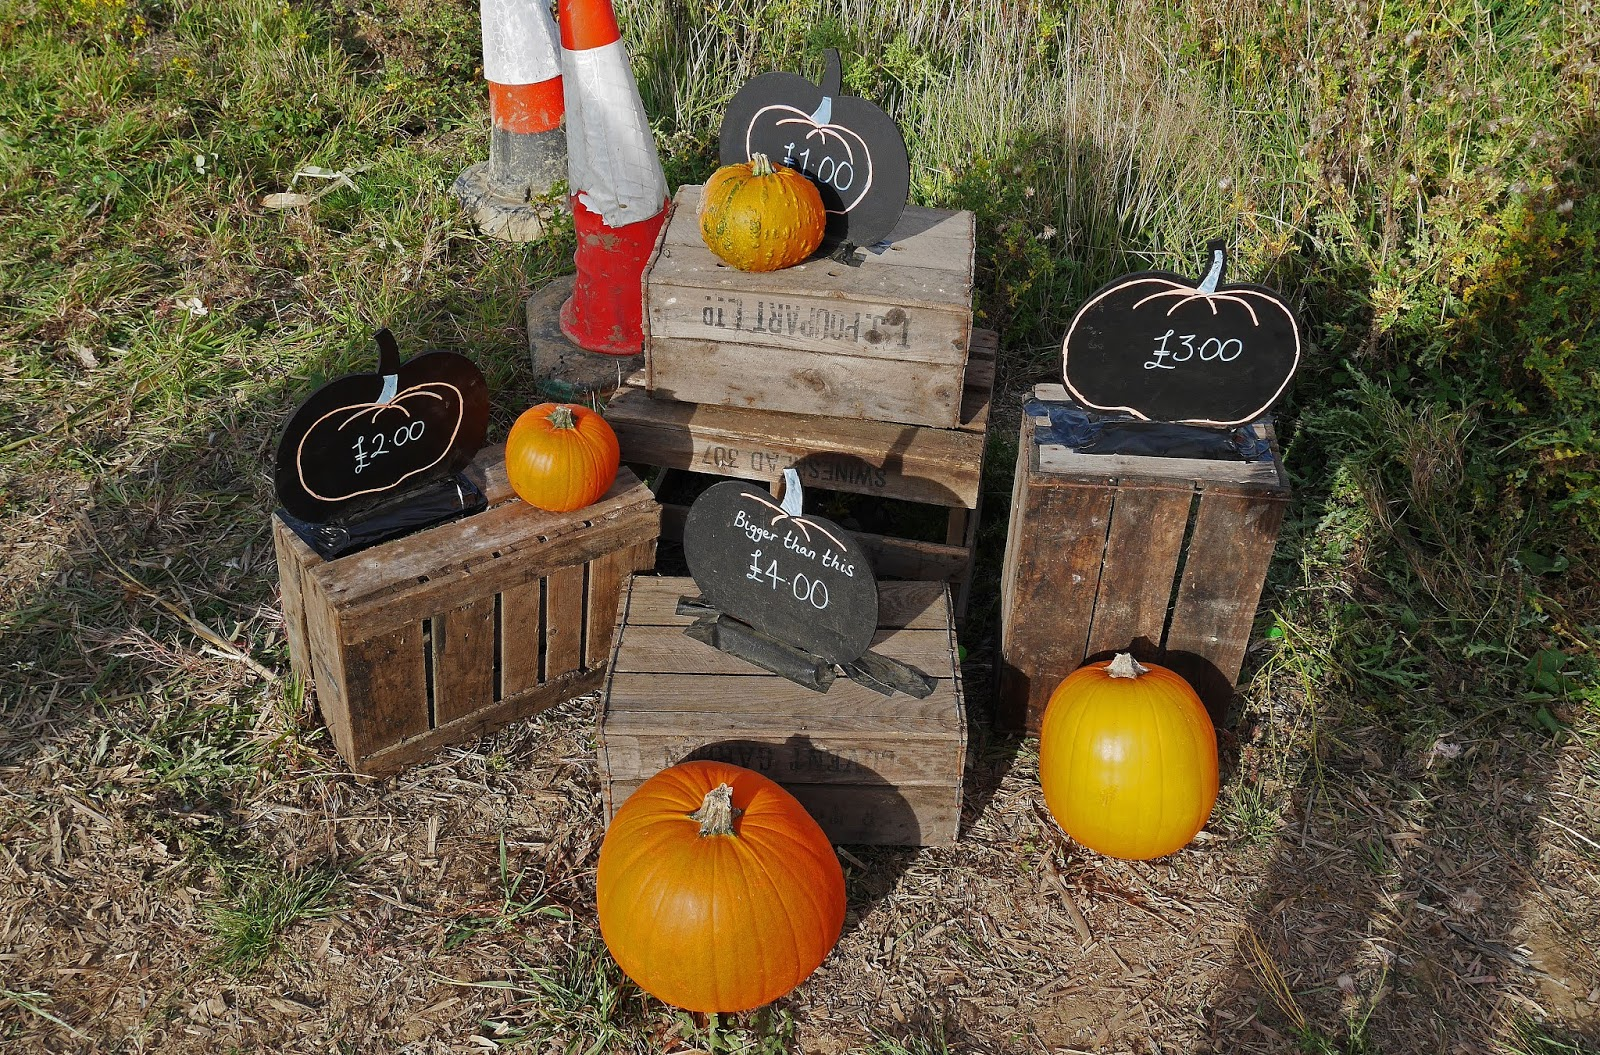 Pumpkin prices at the Sevington pumpkin patch, Ashford